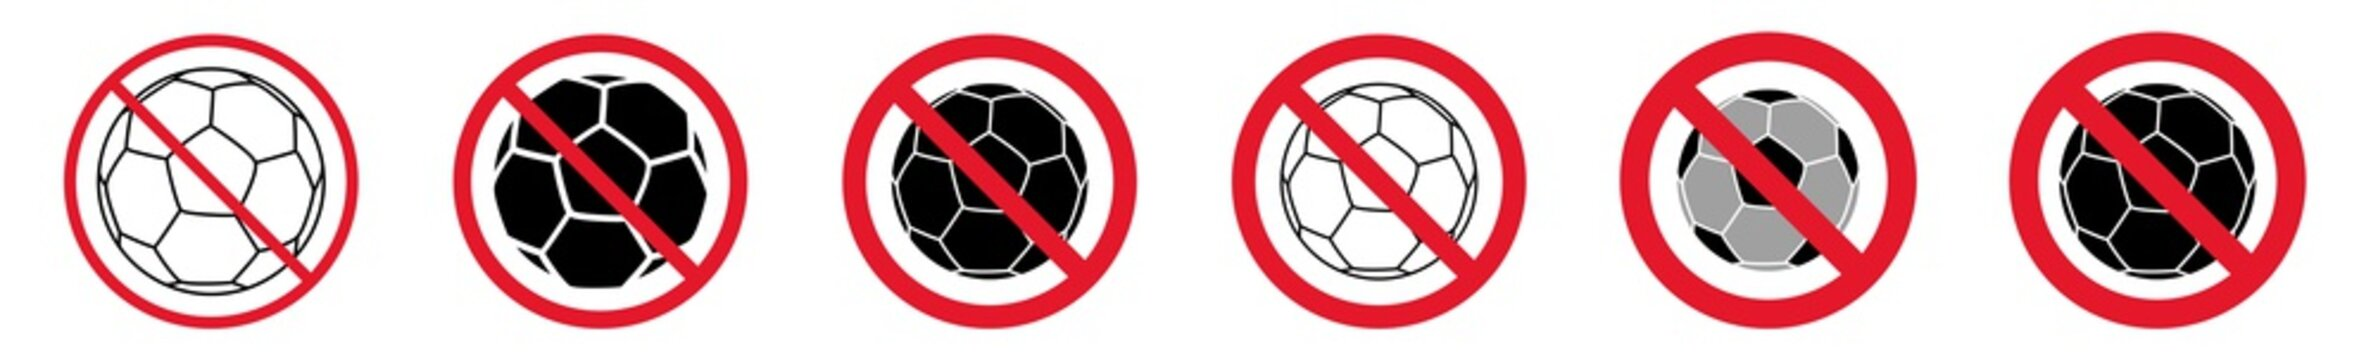 Prohibition Sign Soccer Ball Football Forbidden Icon Set   Soccer Balls Prohibition Signs Prohibited Vector Illustration Logo   Football Ball Prohibition Sign Isolated Collection